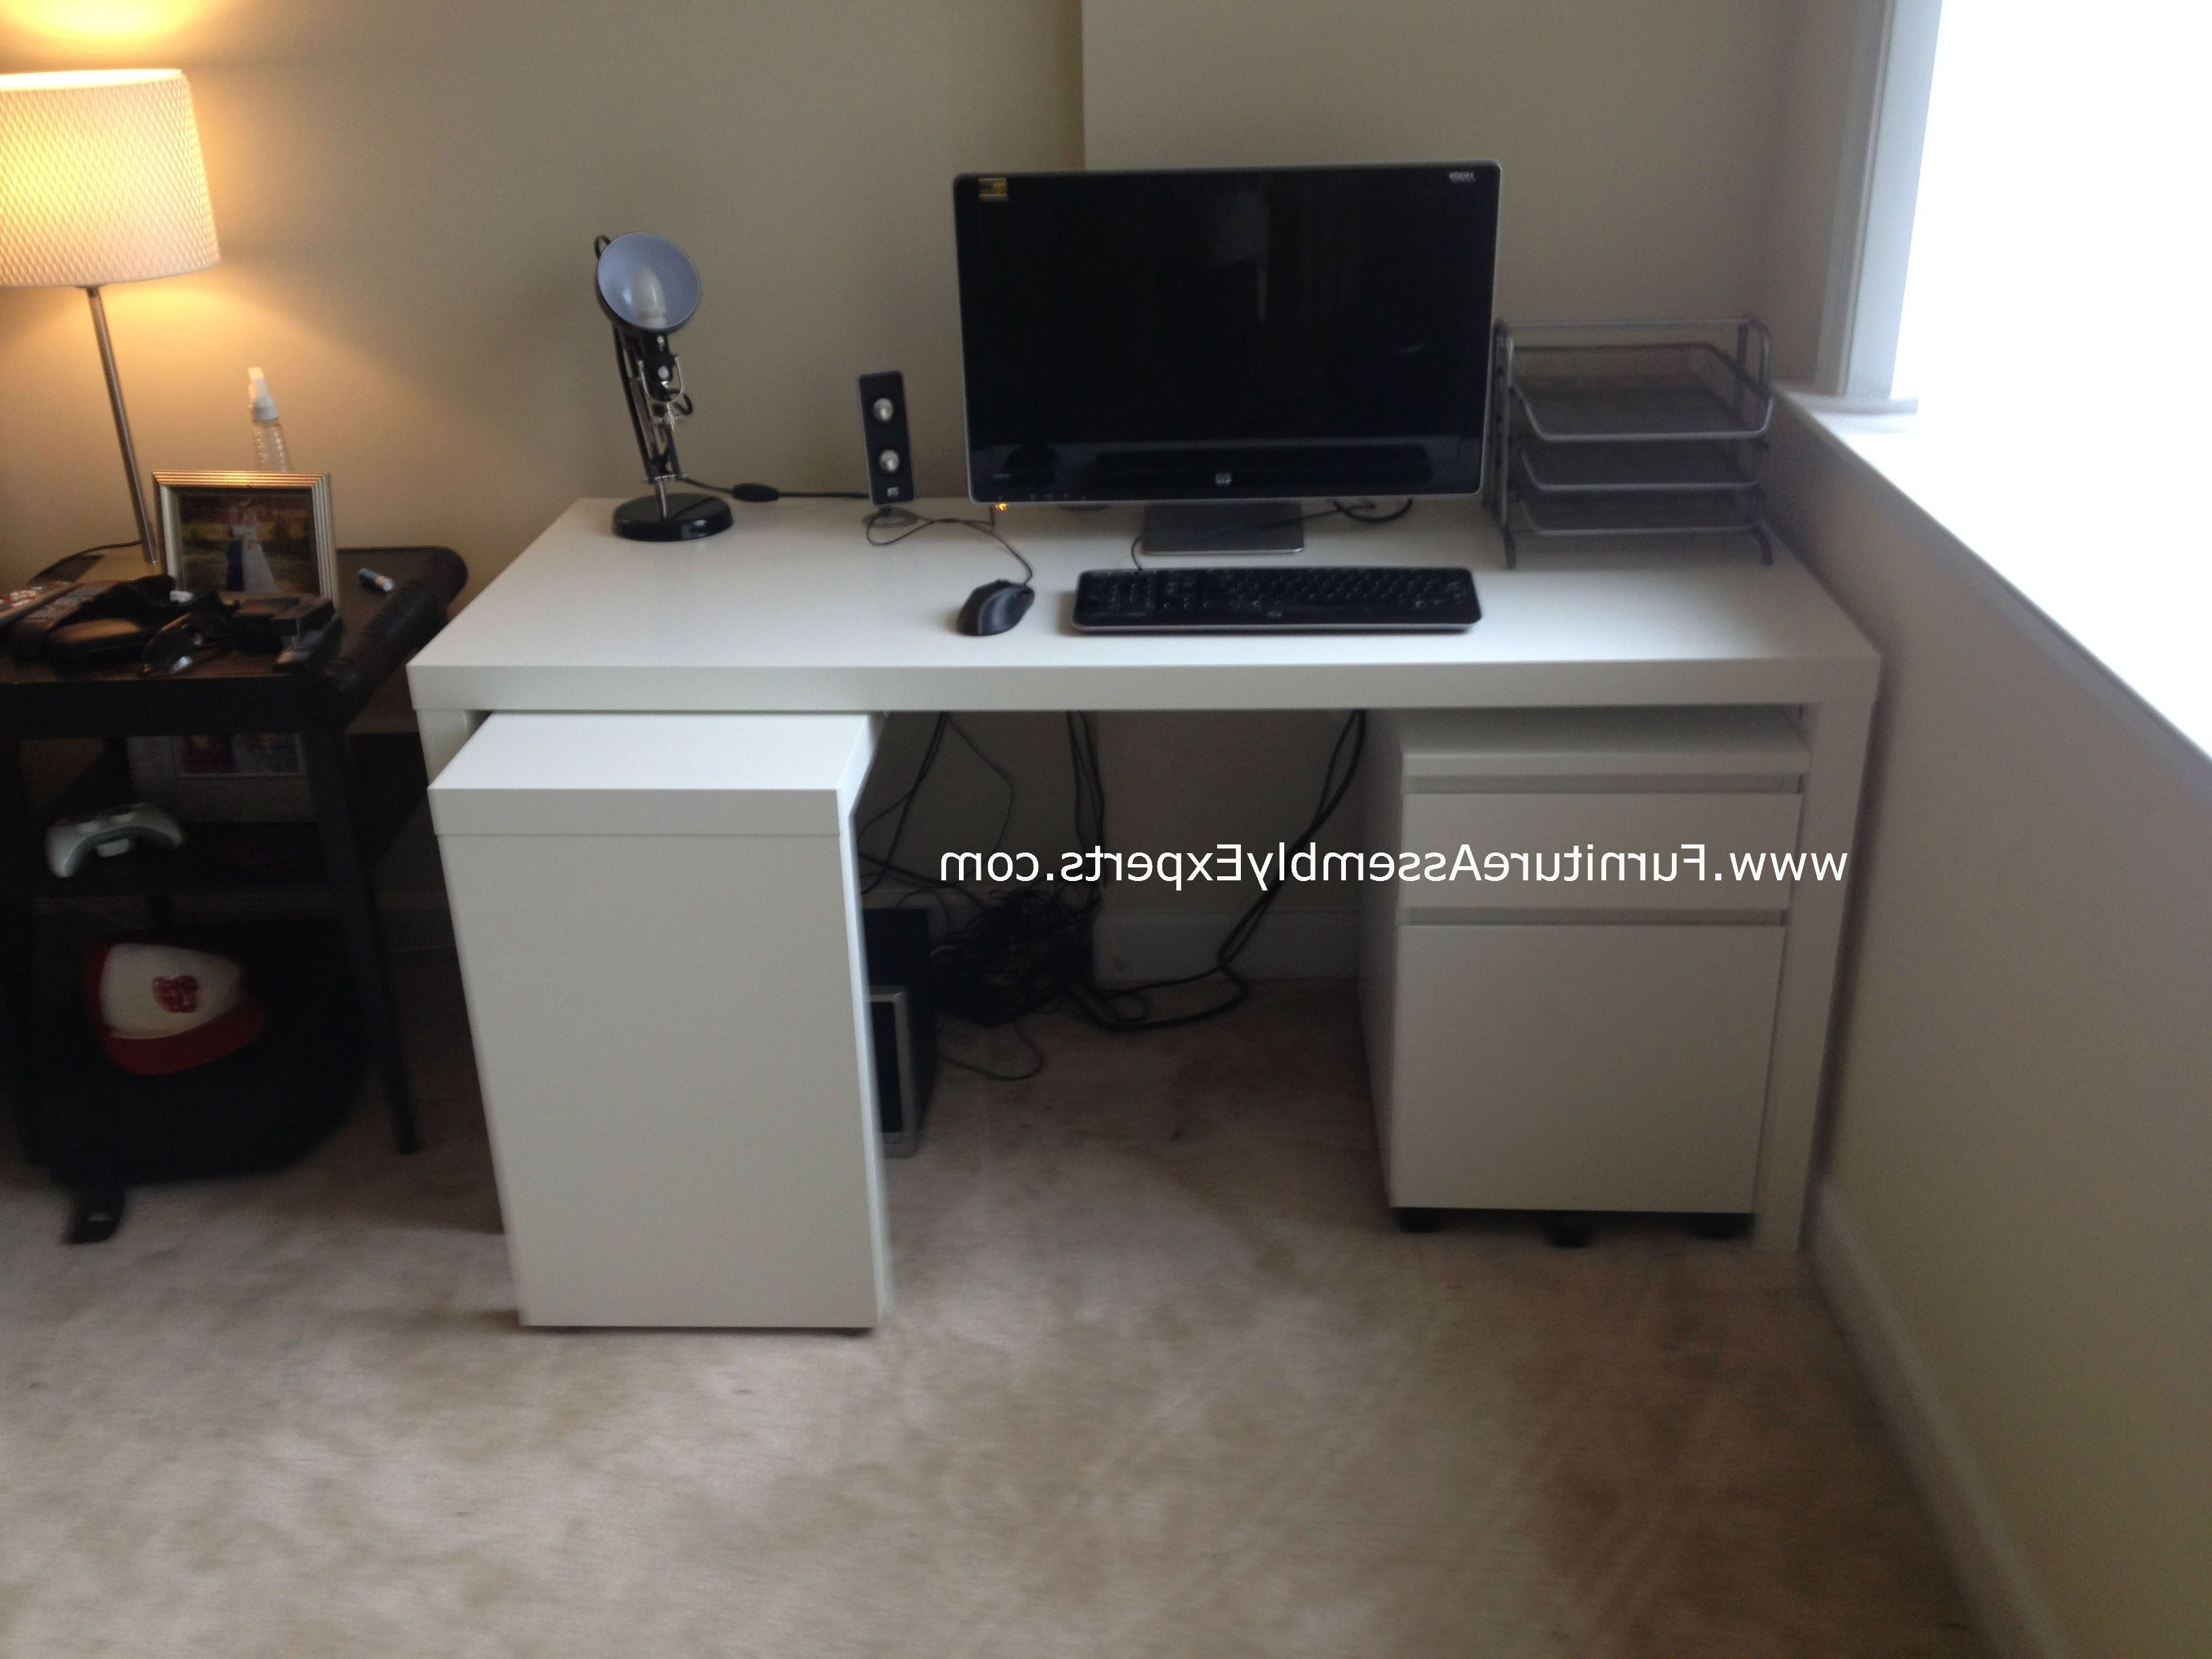 Fashionable Assembled Computer Desks Pertaining To Ikea Malm Desk With Drawer Unit Assembled At Quincy Plaza (View 12 of 20)